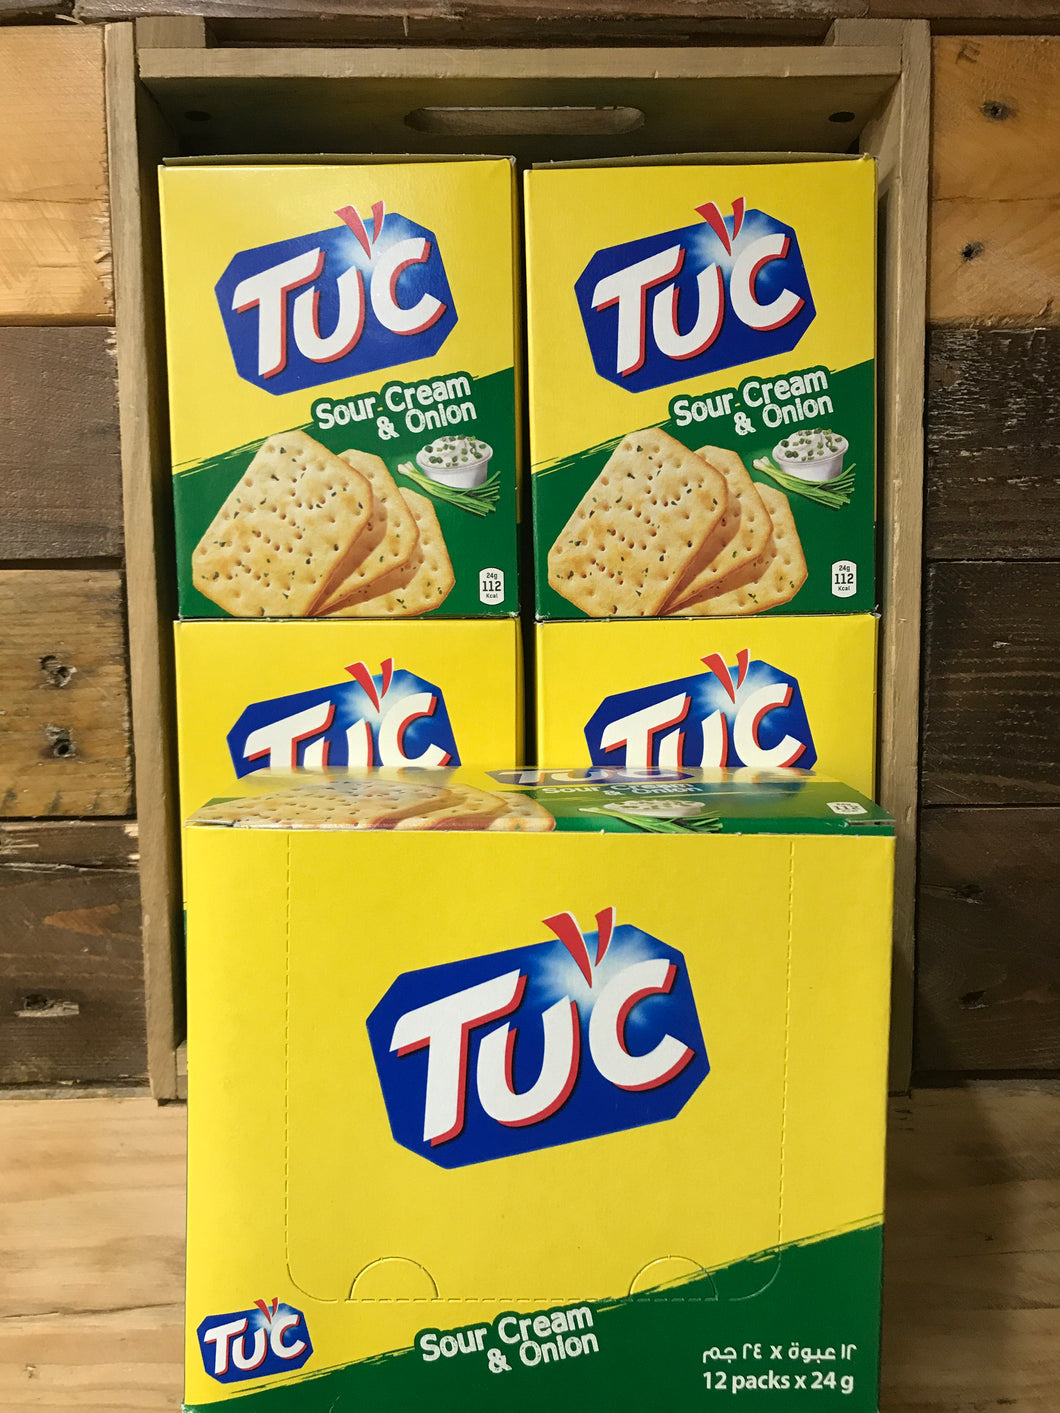 60x Packs of TUC Biscuits Sour Cream & Onion Flavour Snack 6x Biscuit Pack (12x24g)